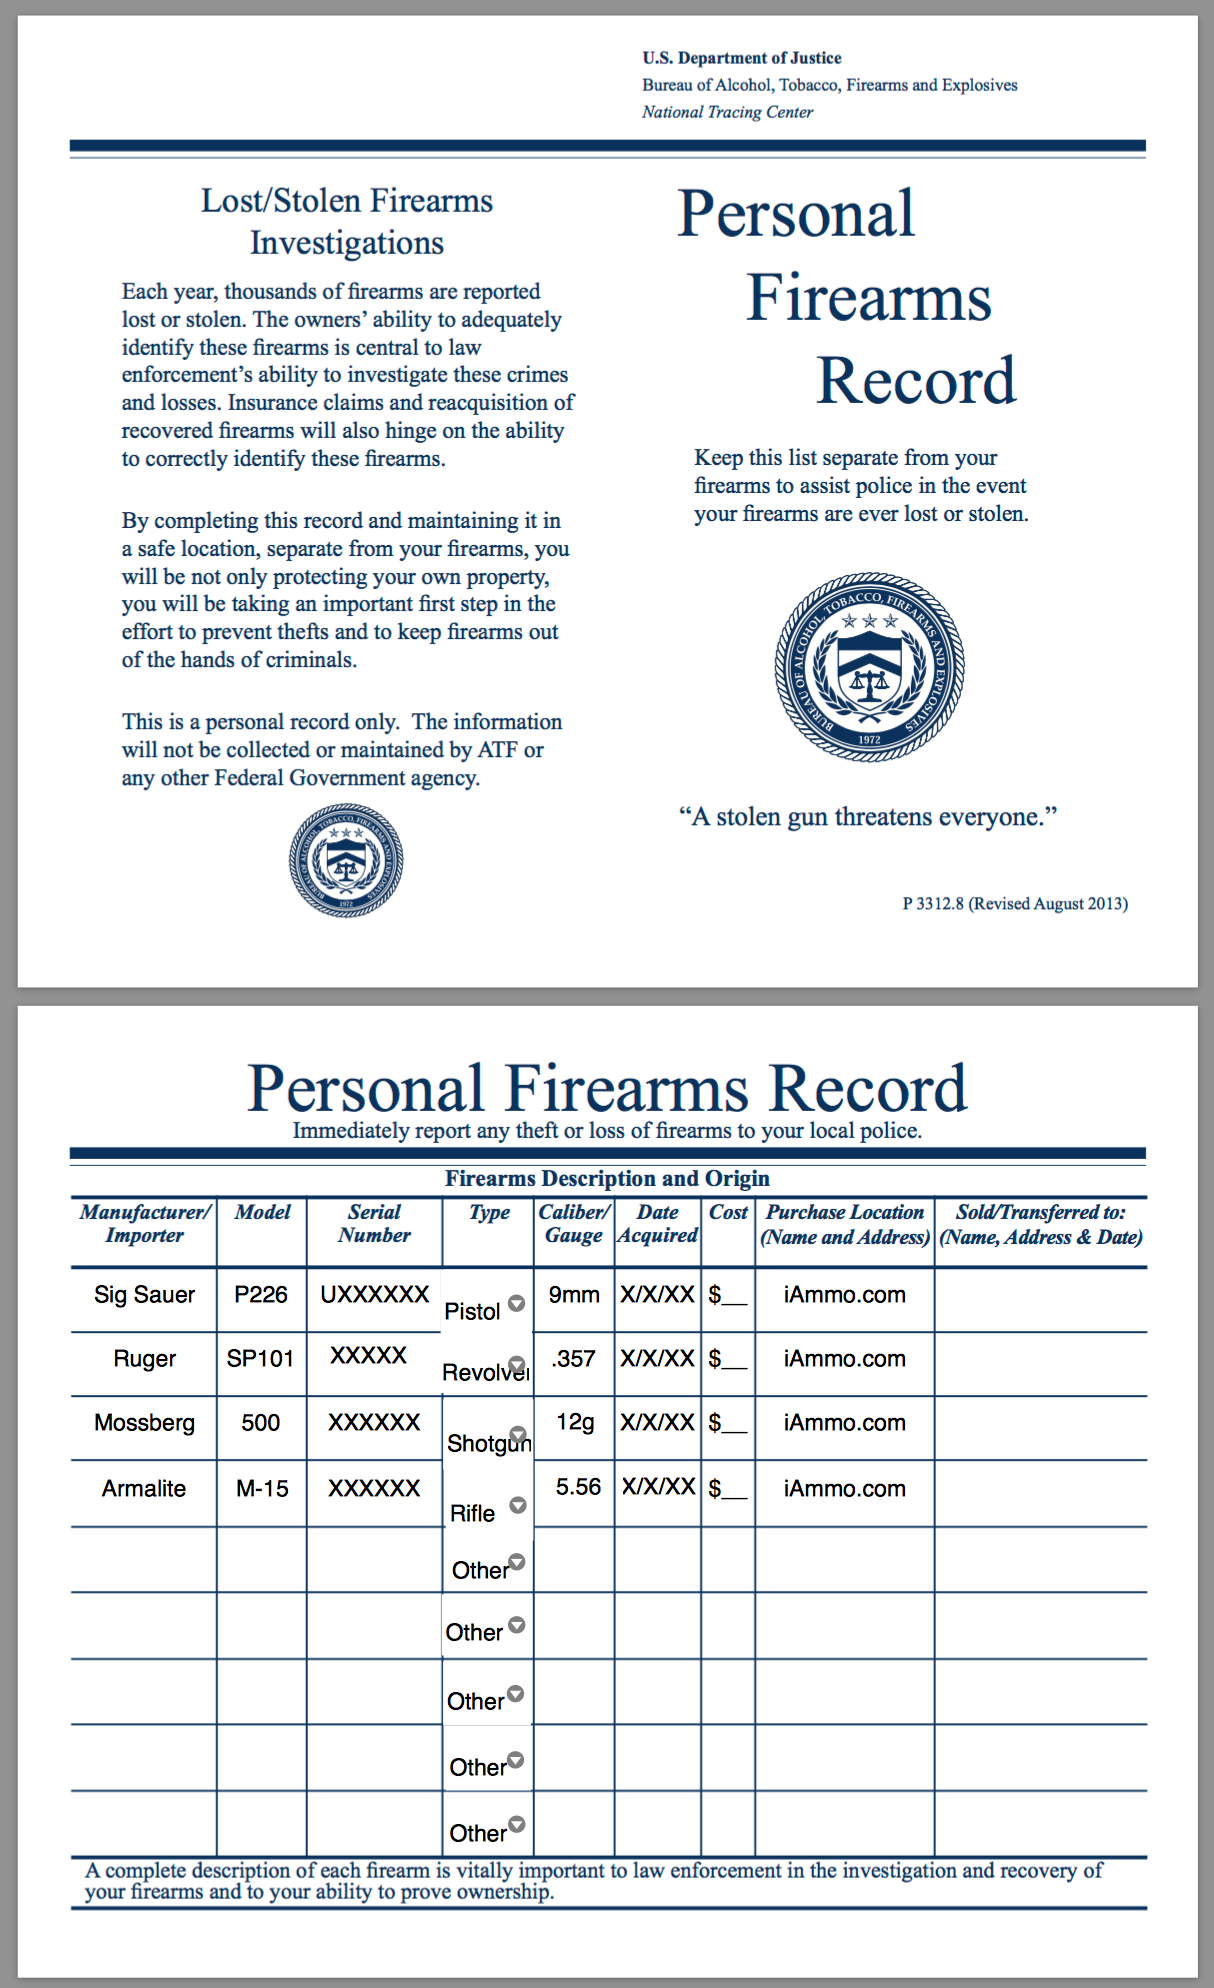 Sample Personal Firearms Record